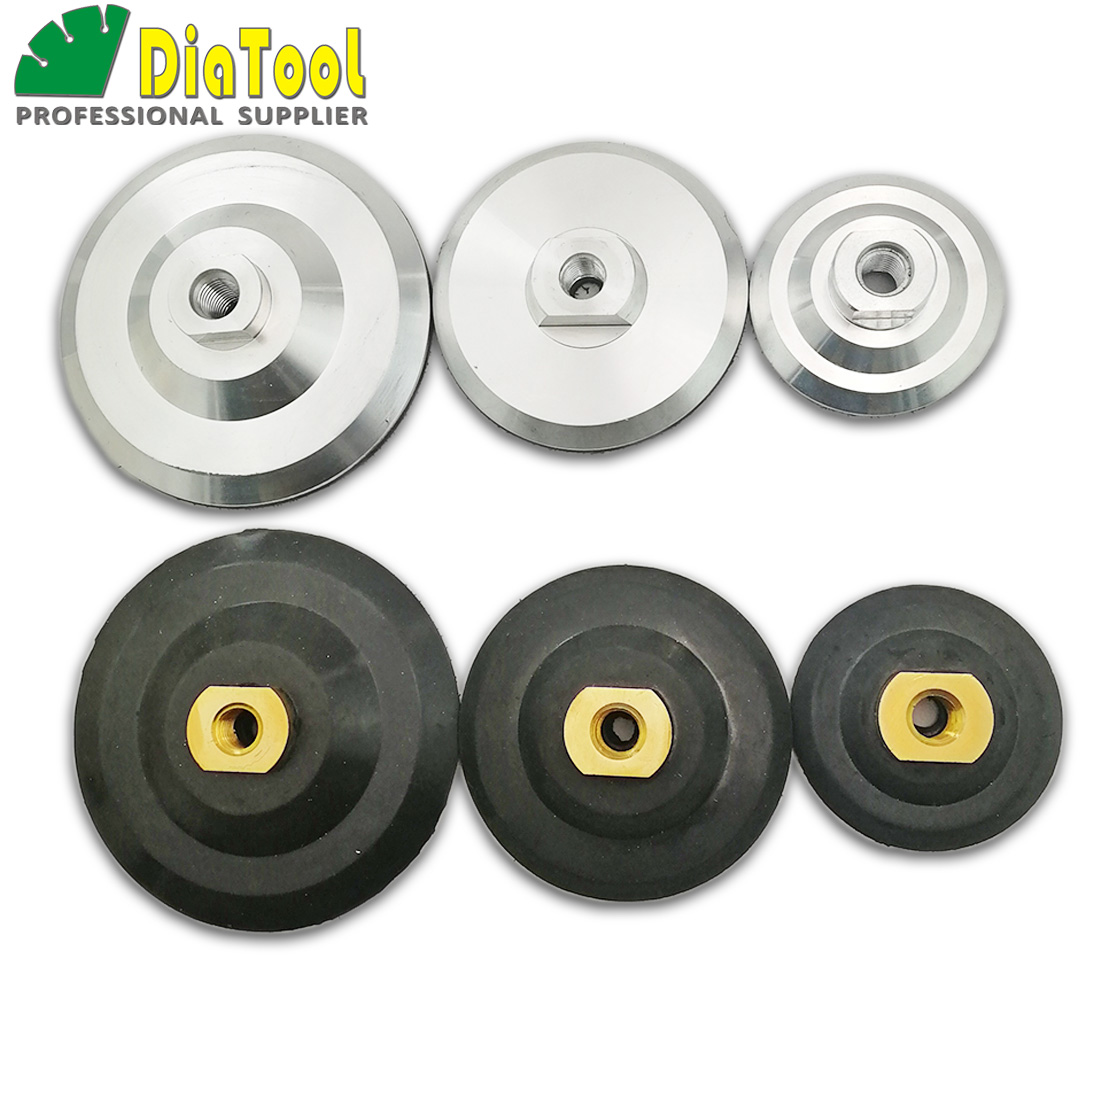 DIATOOL Back Pad For Diamond Polishing Pads M14 Thread Diameter 3